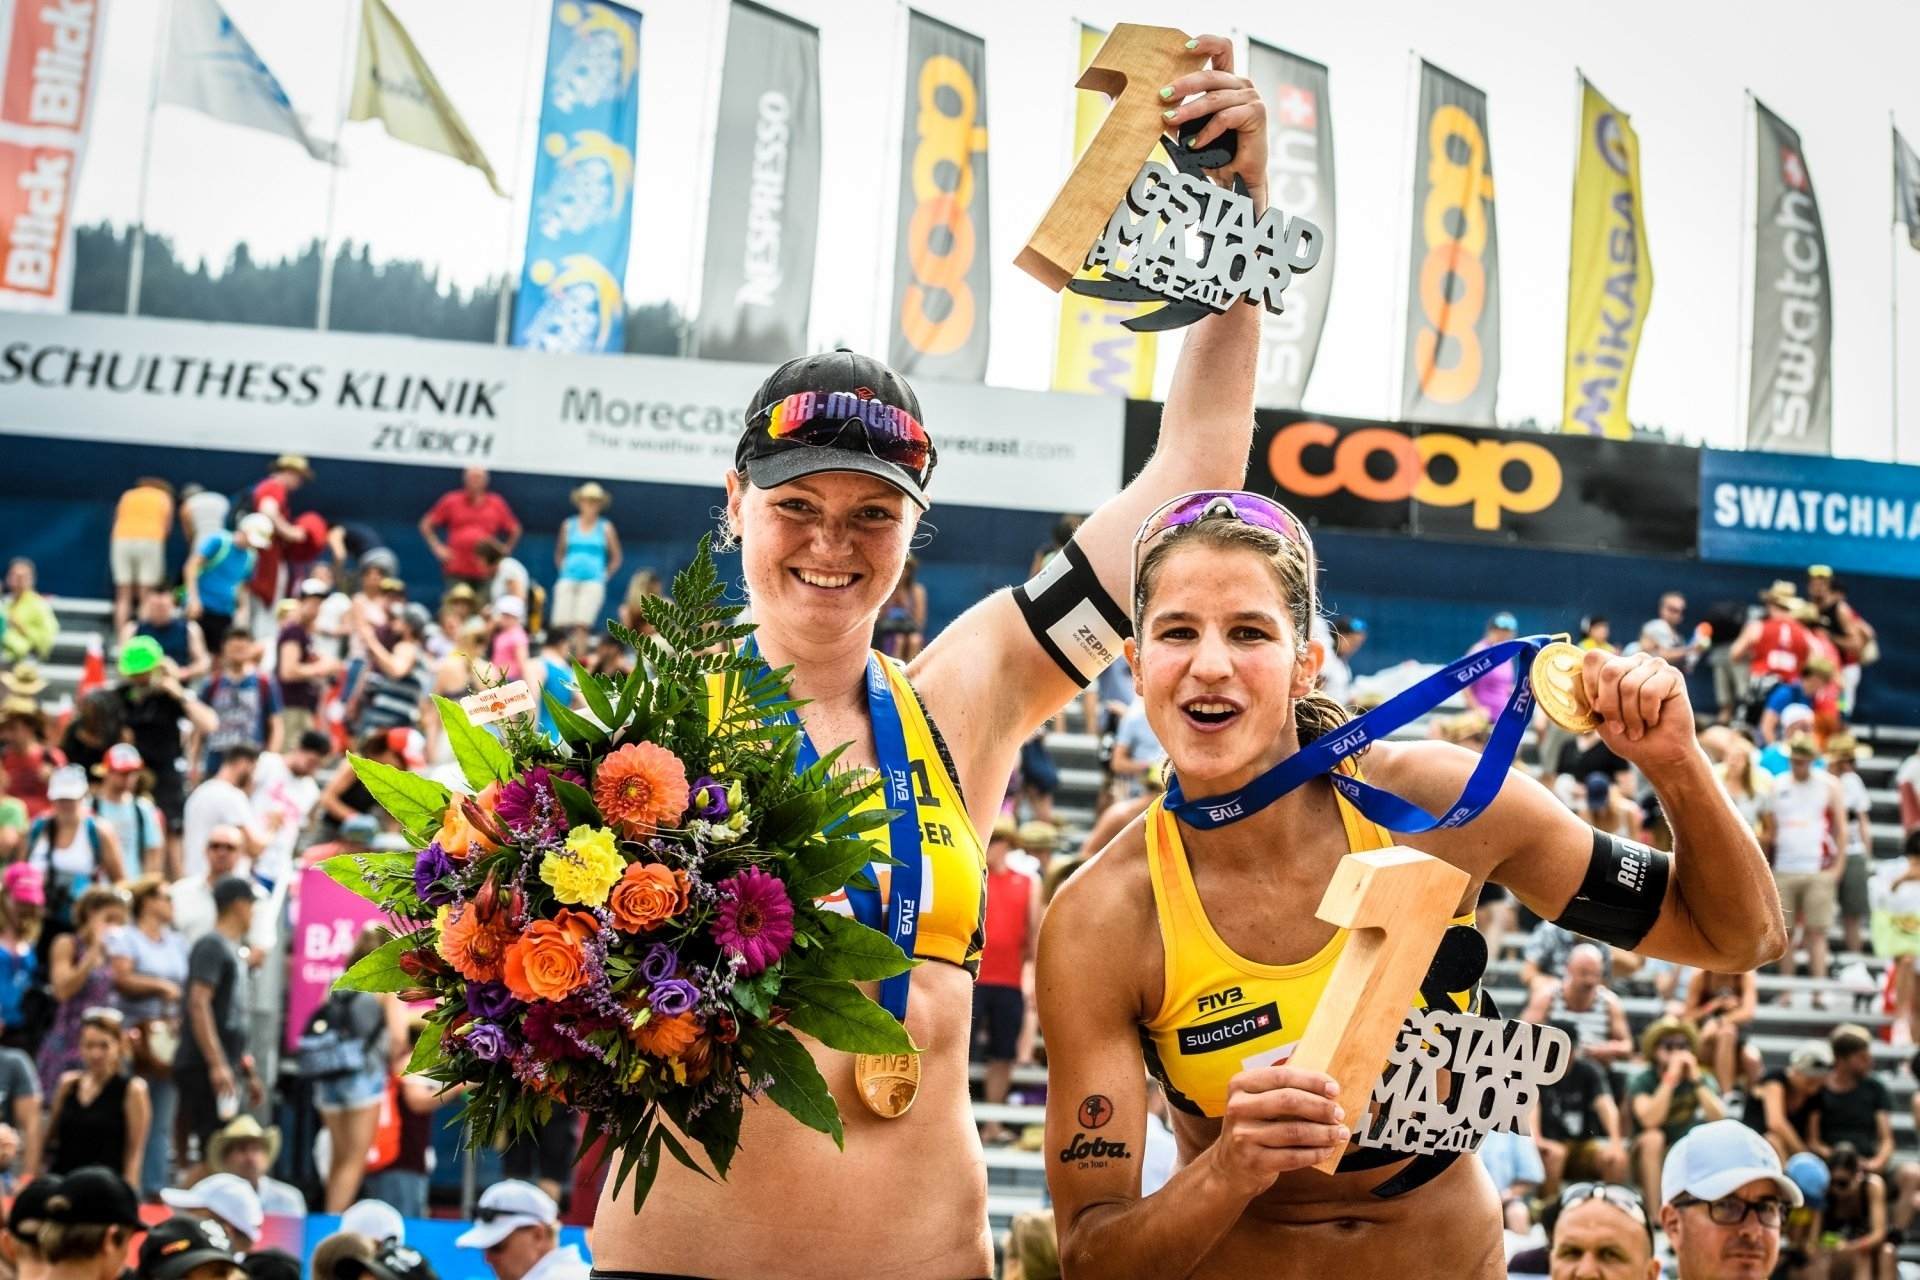 Julia and Chantal won the Gstaad Major in 2017